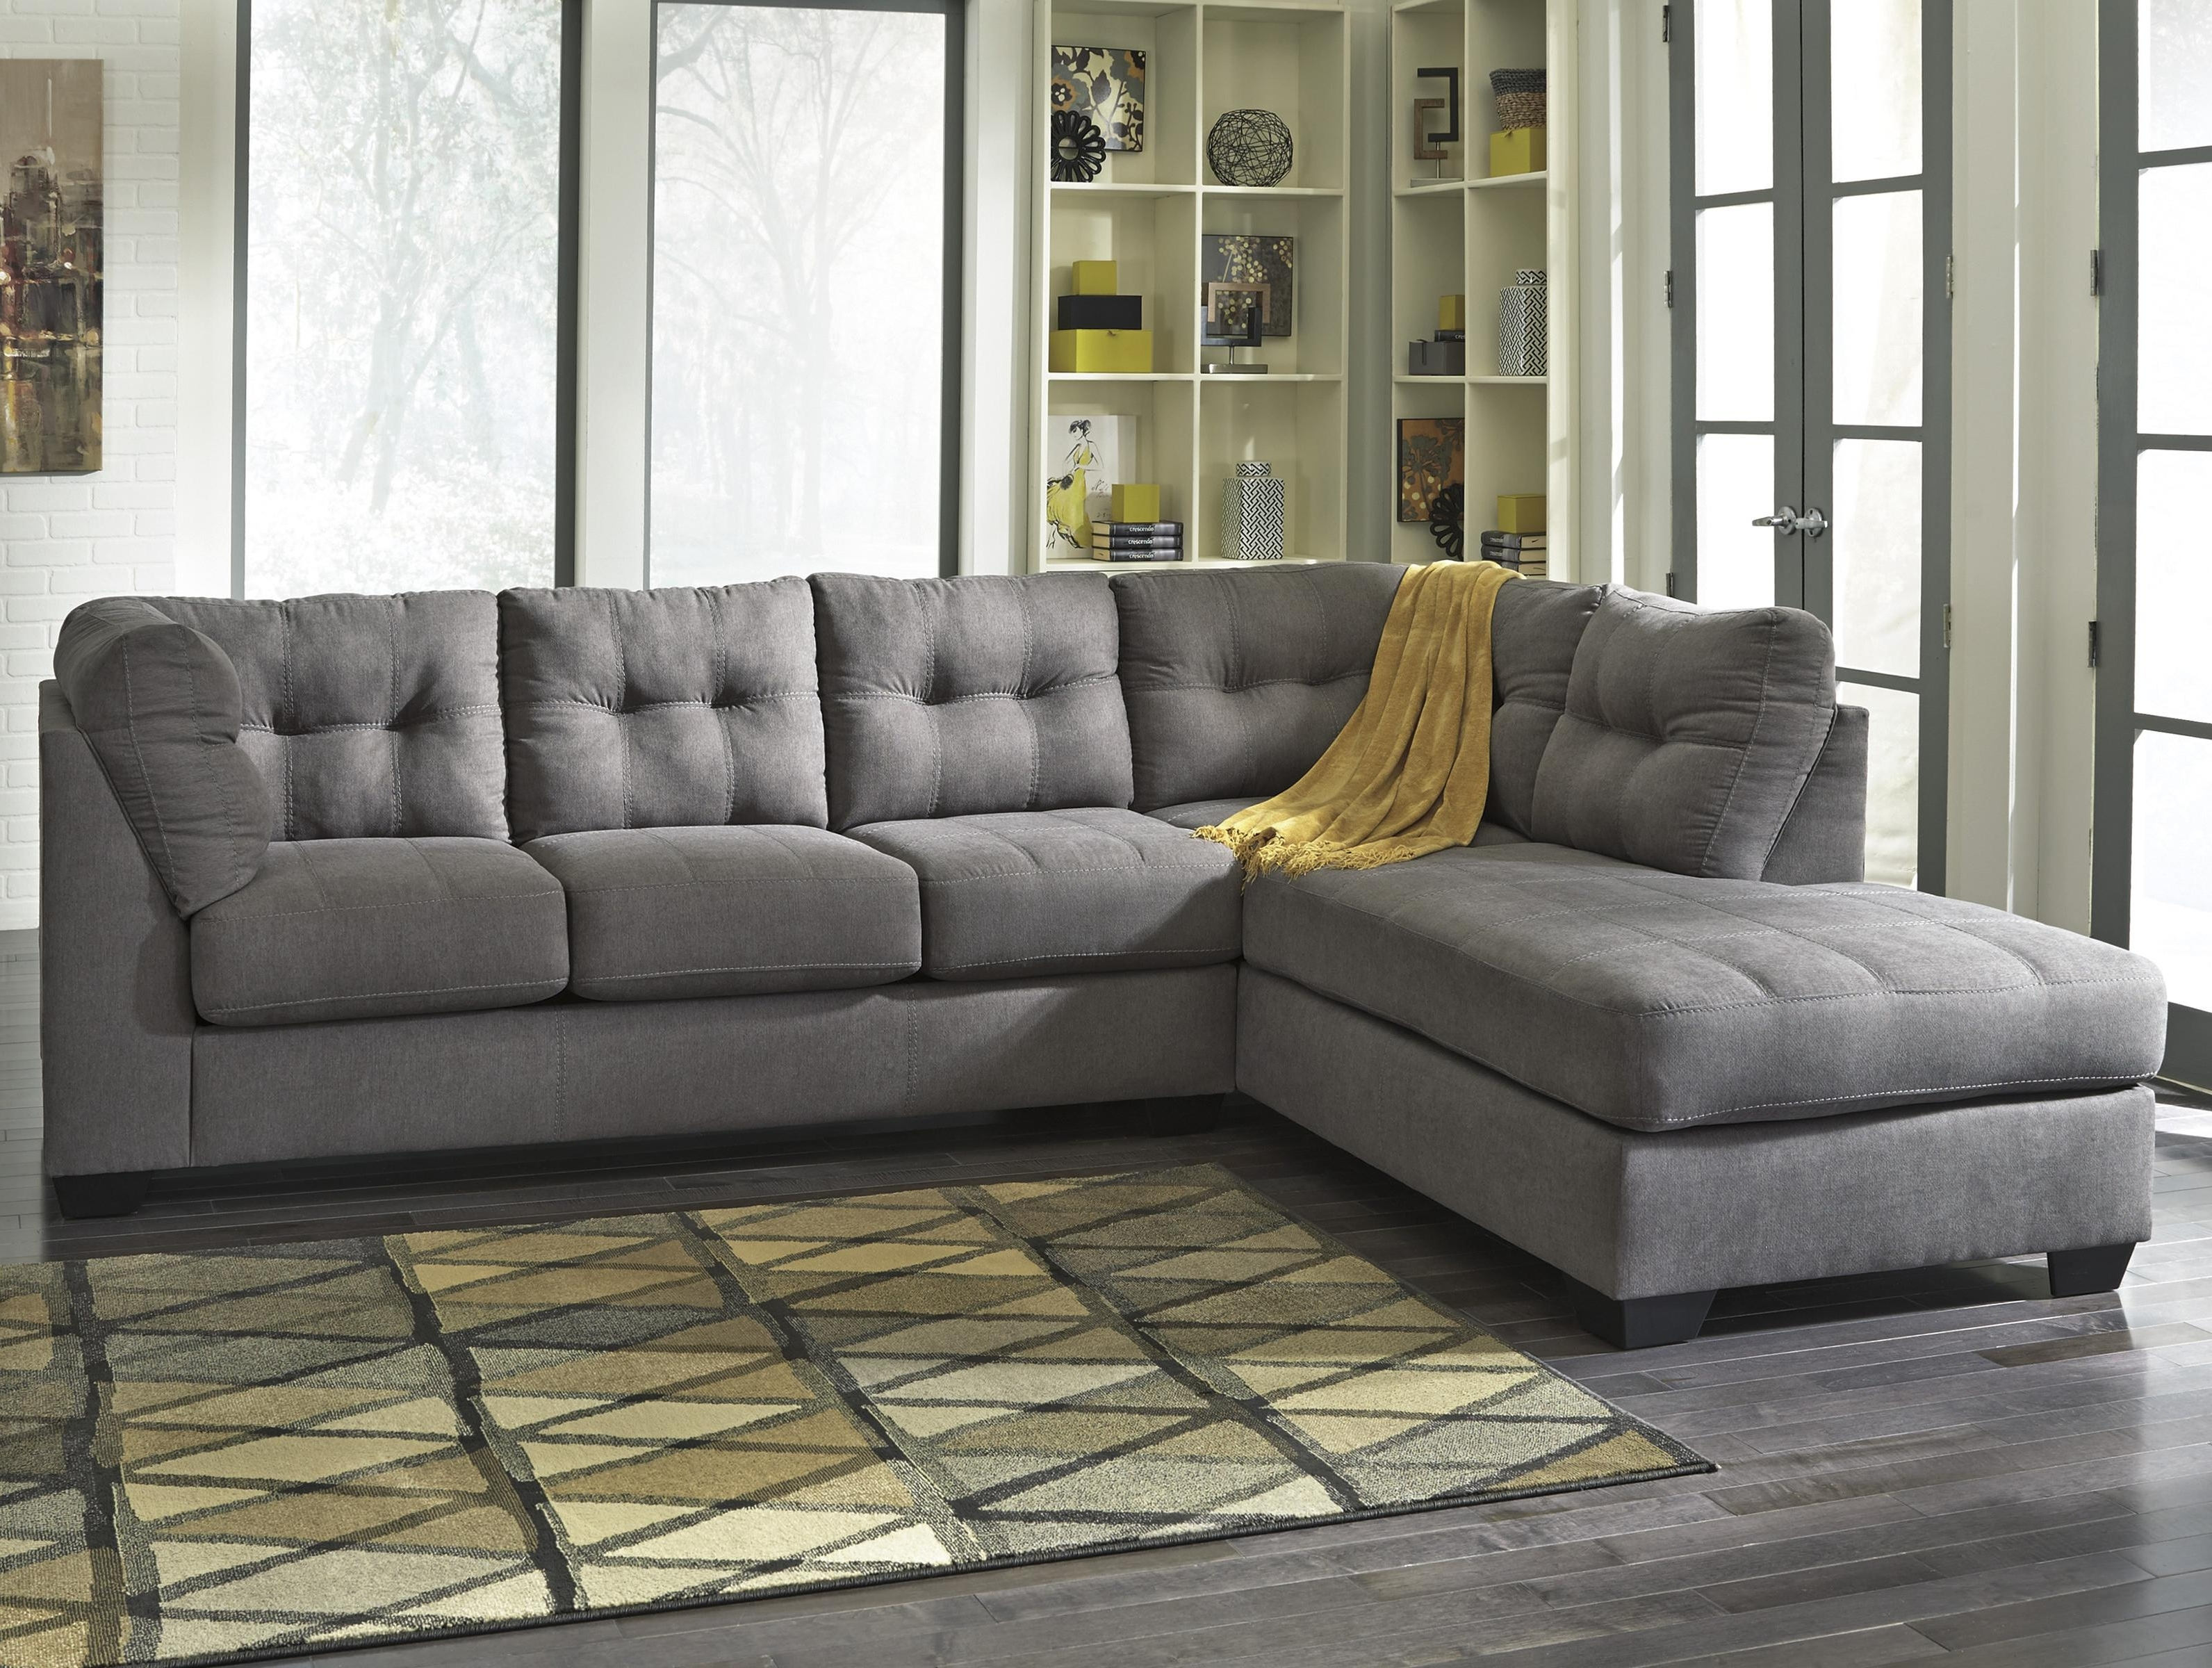 Memphis Tn Sectional Sofas Inside Most Up To Date Benchcraftashley Maier – Charcoal 2 Piece Sectional With Left (View 13 of 15)